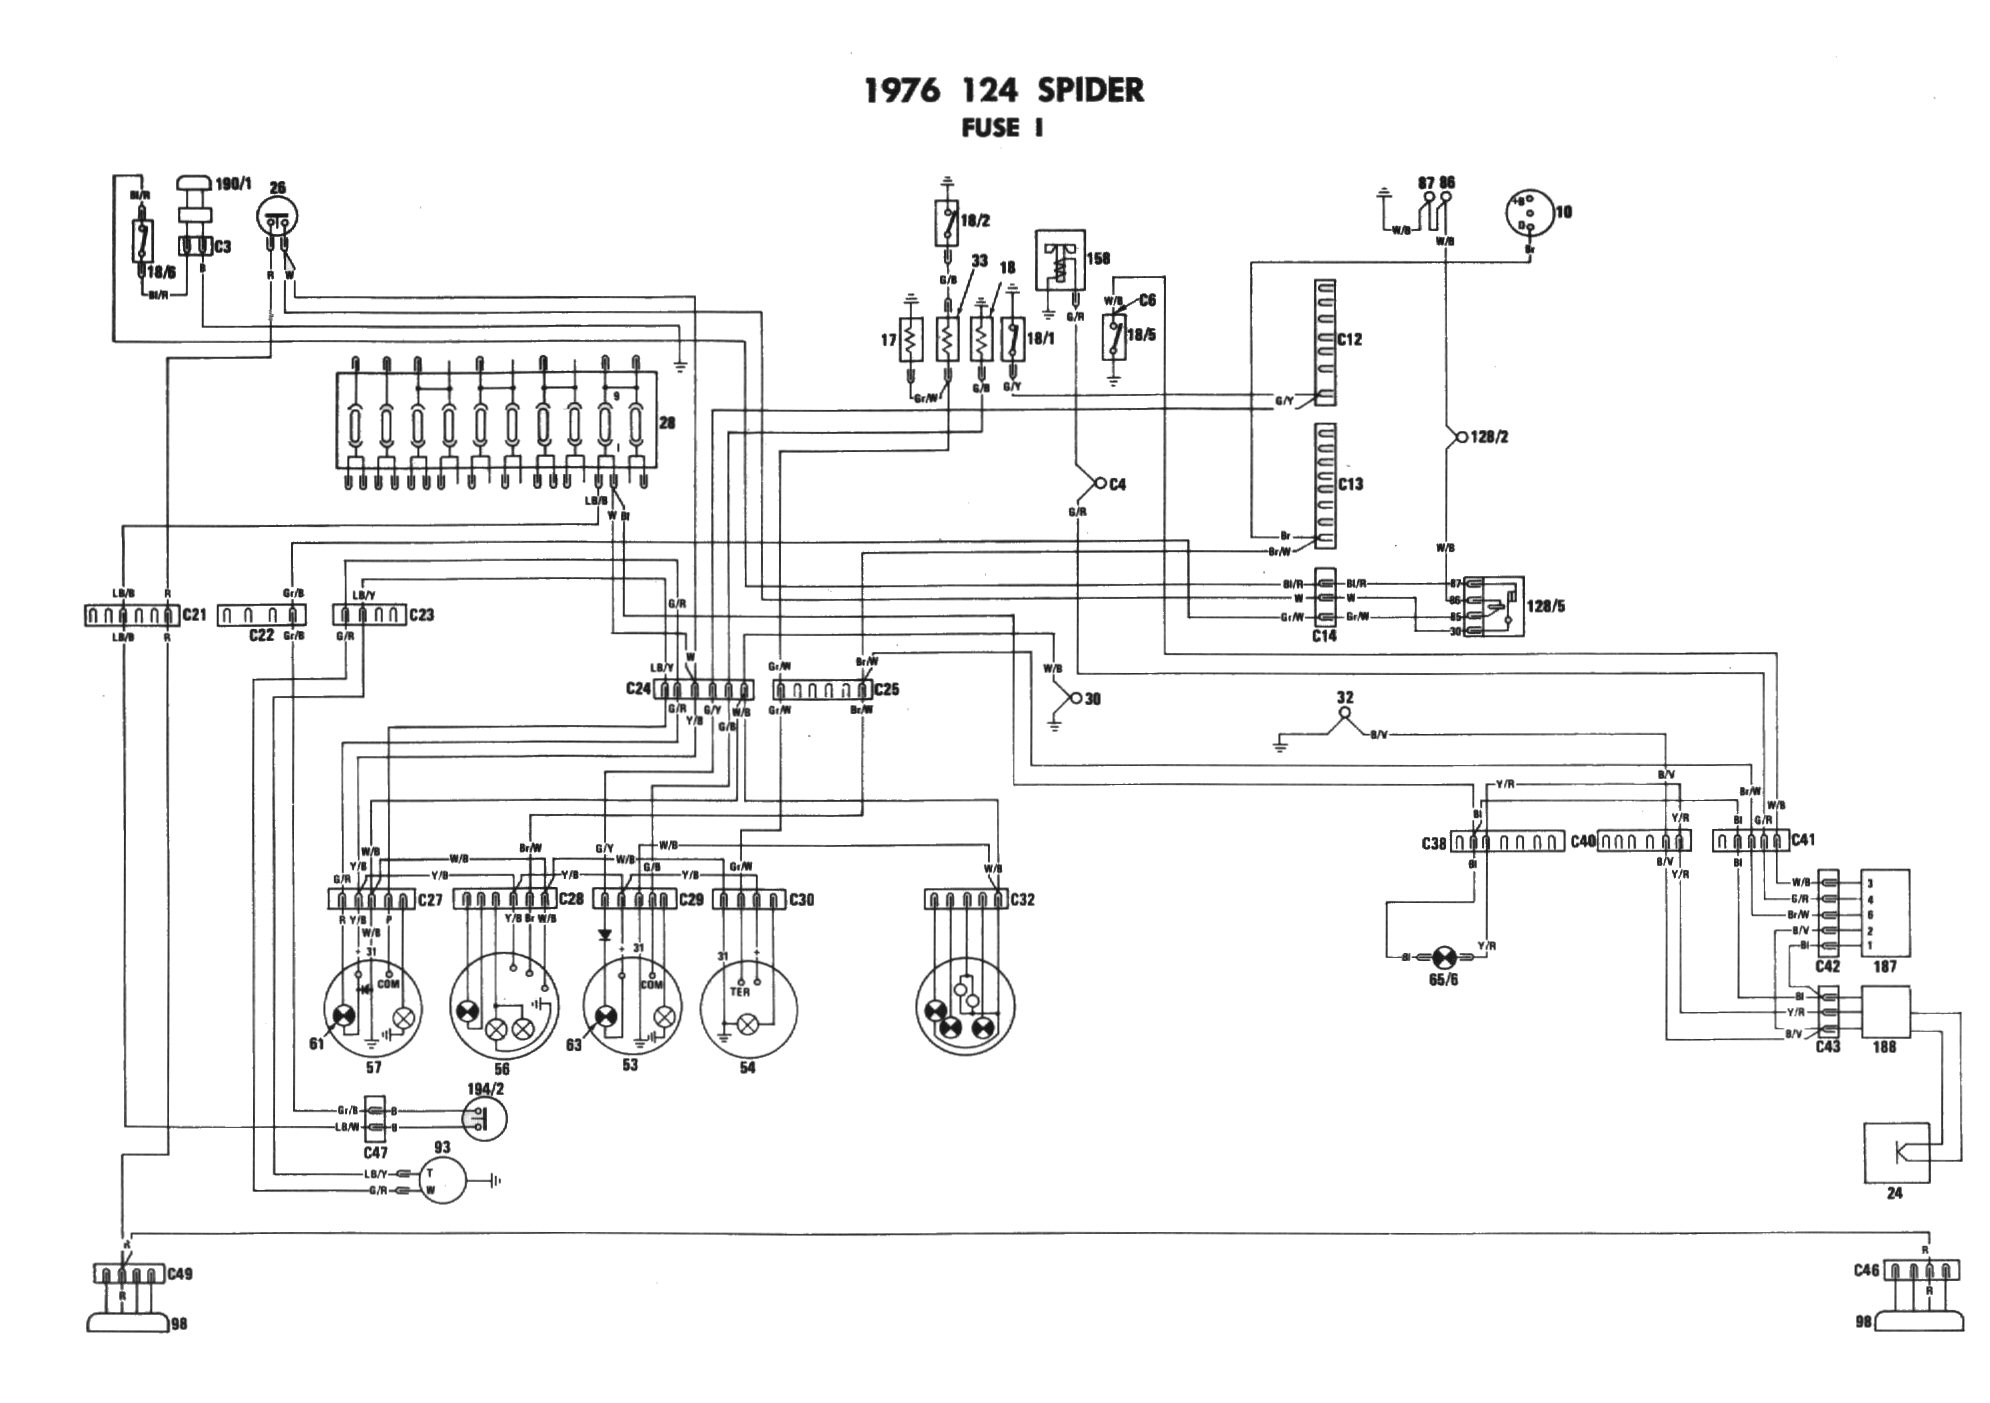 1972 Camaro Fuse Diagram House Wiring Symbols 1973 Block Fiat 124 Spider Spidersweb Nl March 2014 Engine Box